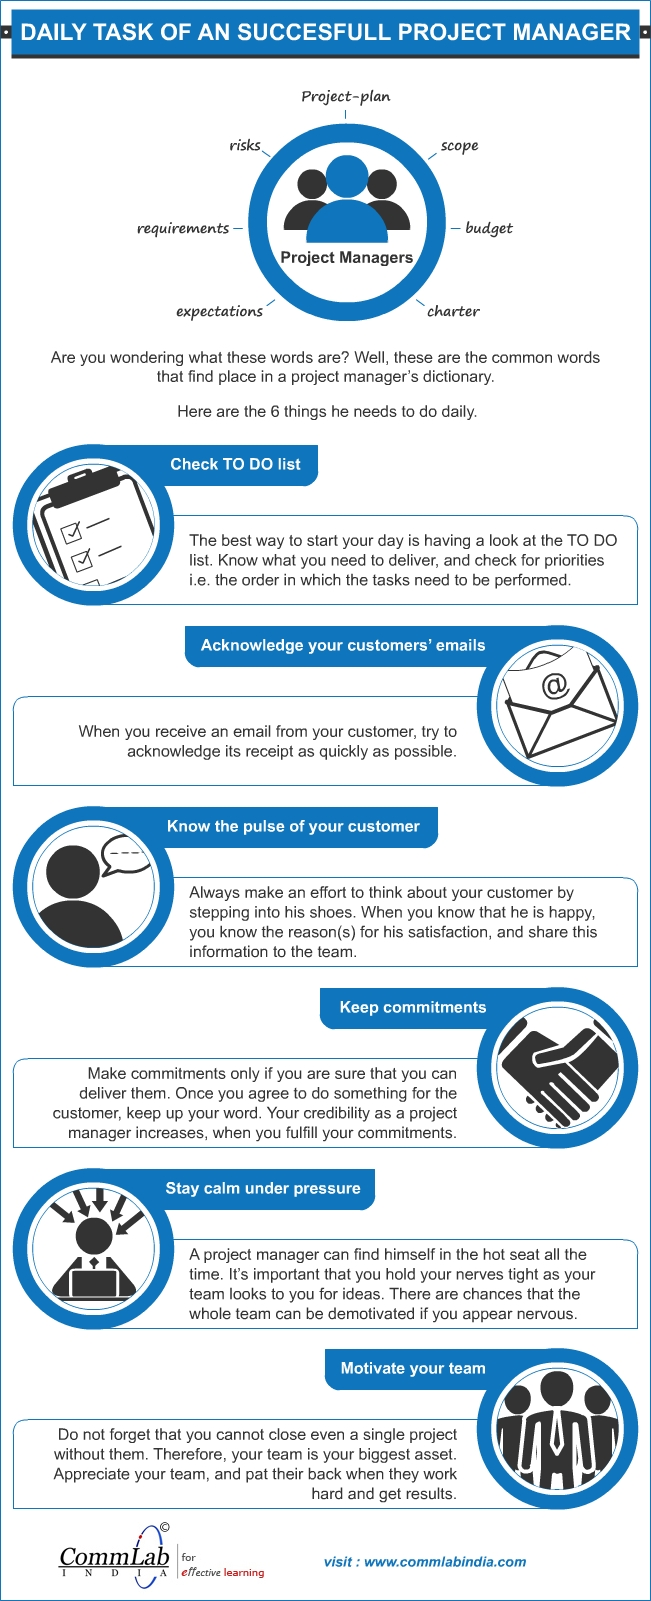 Tasks of a Successful Project Manager – An Info graphic